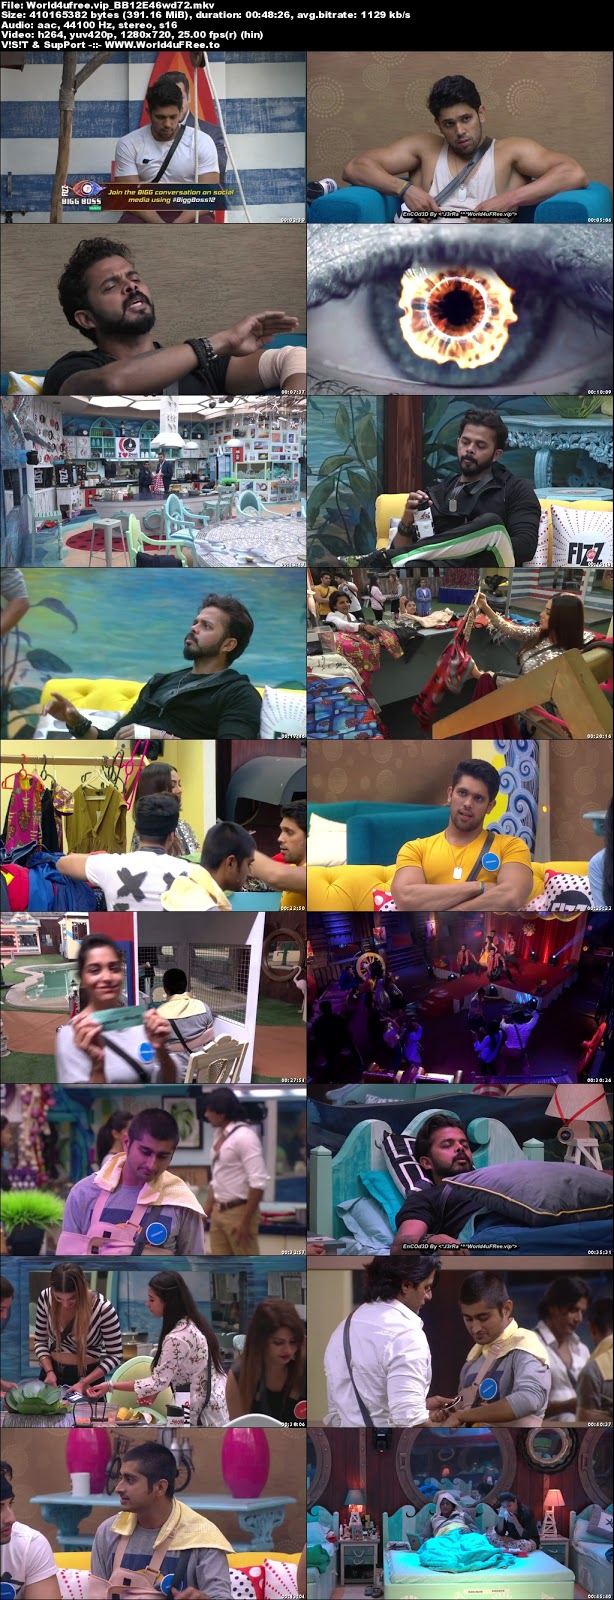 Bigg Boss 12 Episode 46 01 November 2018 720p WEBRip 350Mb x264 world4ufree.vip tv show Episode 46 01 november 2018 world4ufree.vip 300mb 250mb 300mb compressed small size free download or watch online at world4ufree.vip